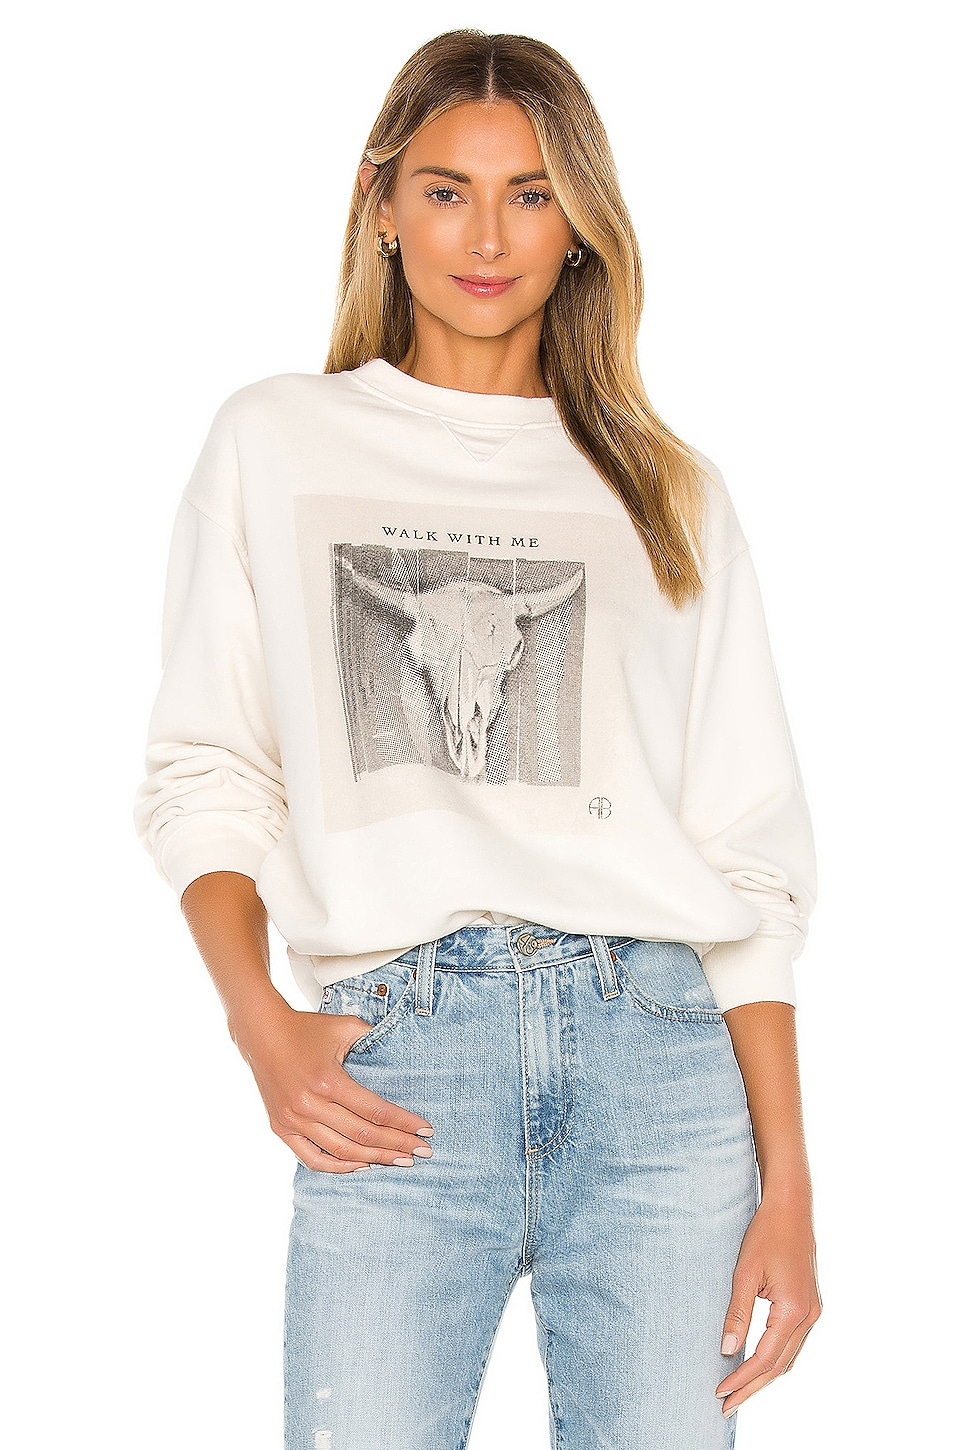 Ramona Walk With Me Sweatshirt             ANINE BING                                                                                                       CA$ 224.71 3